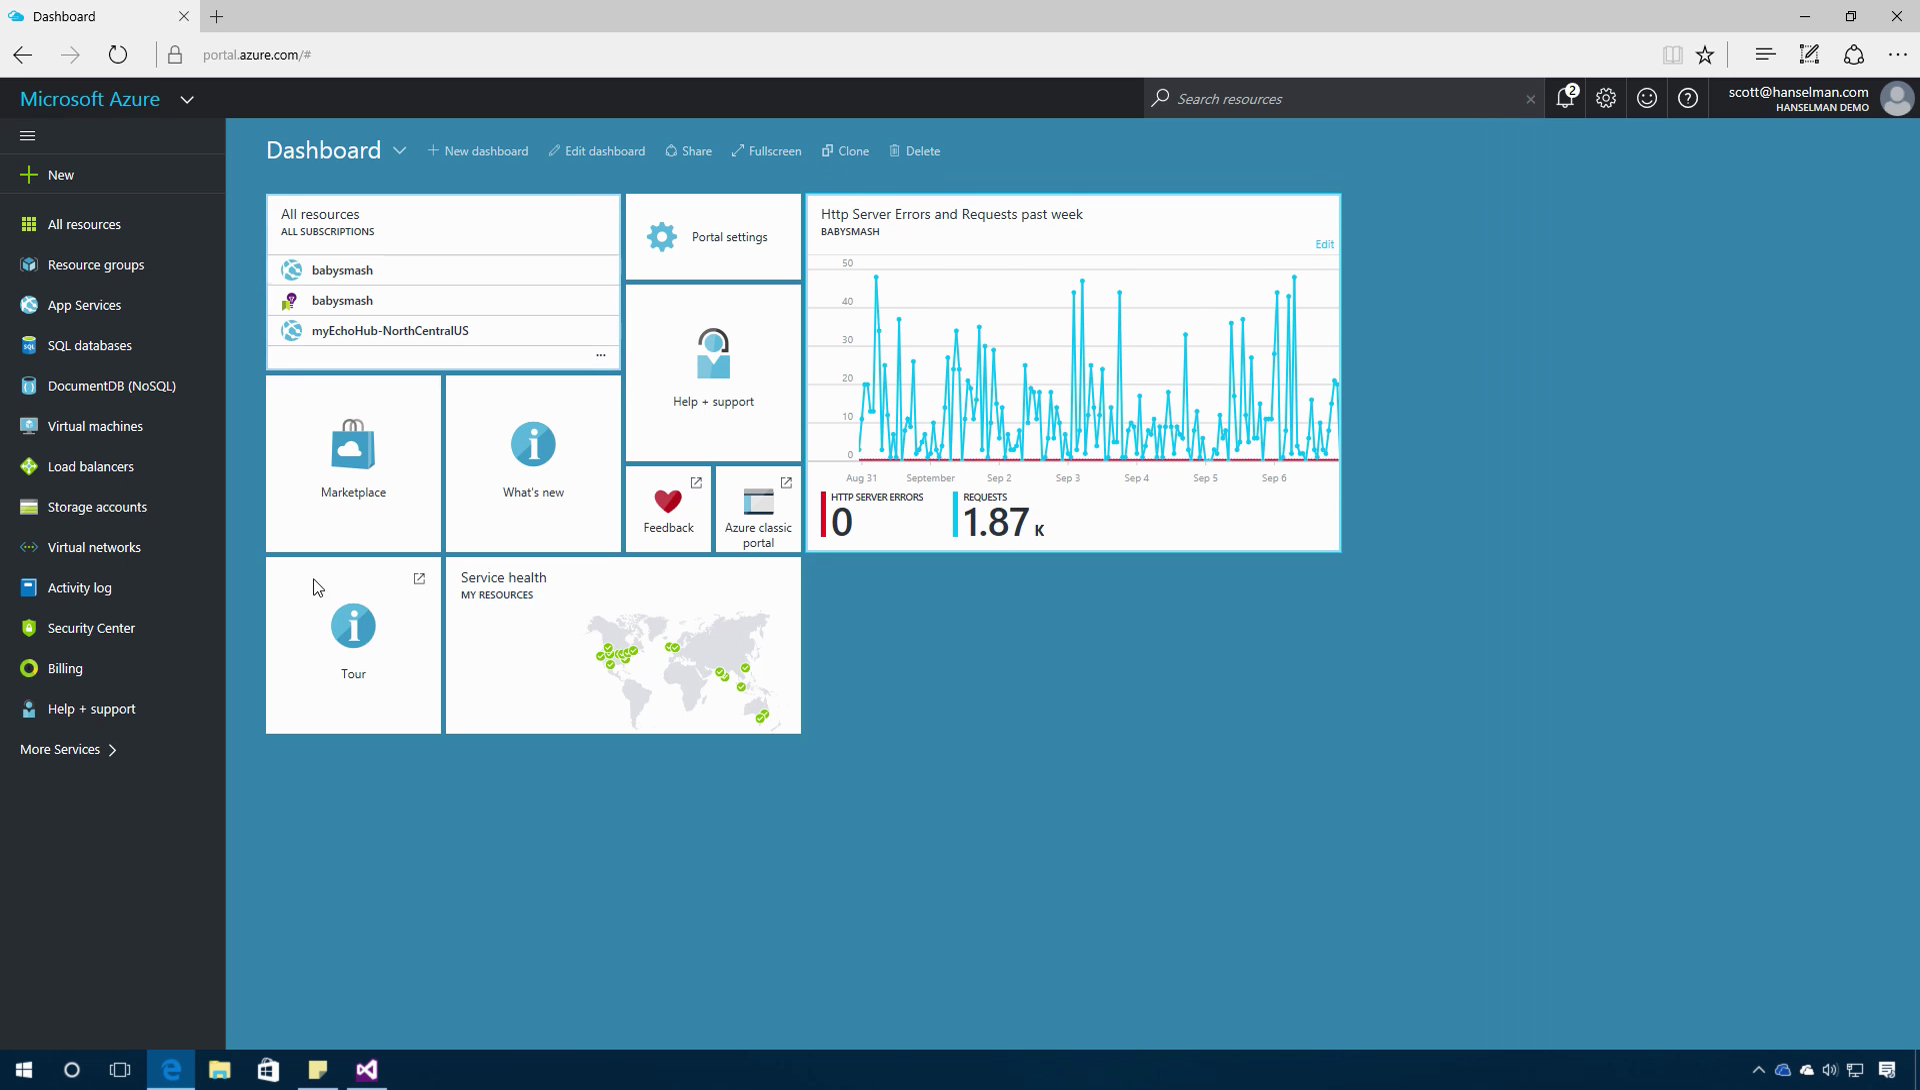 Get Started with the Azure portal and Azure App service